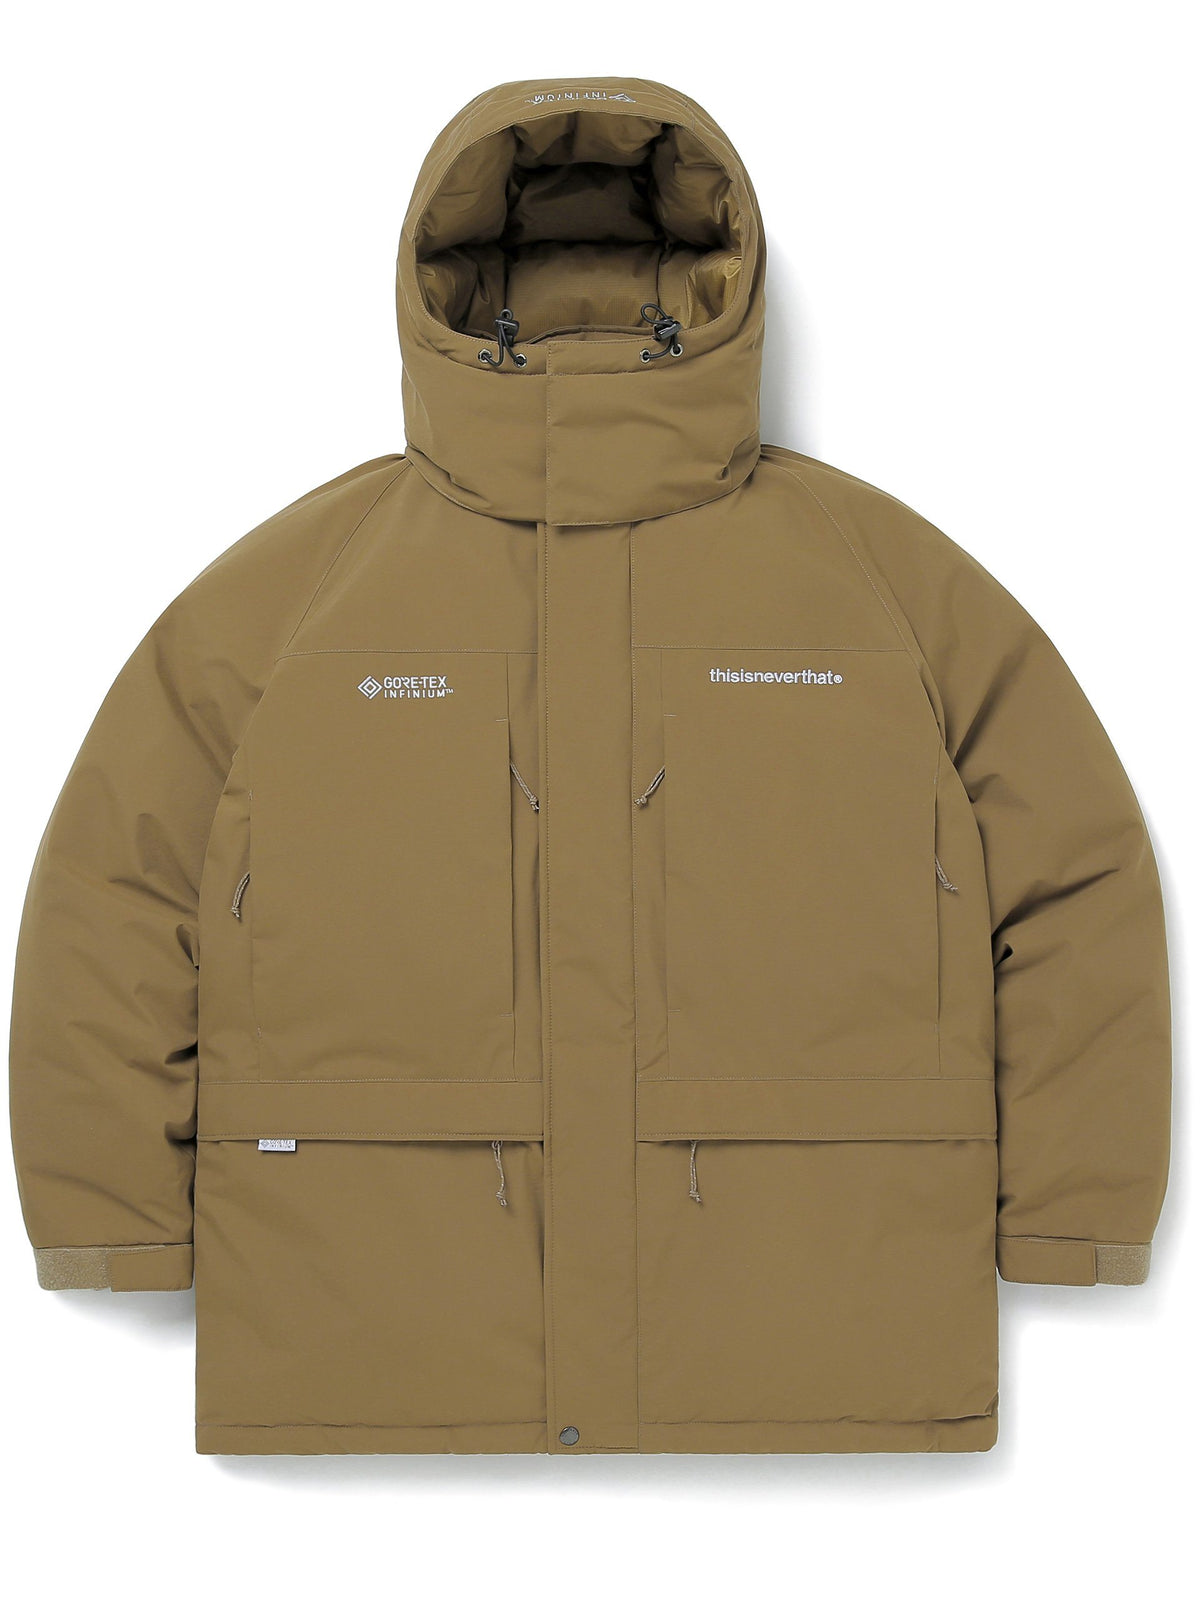 GORE-TEX® INFINIUM™ Mountain Down Parka - thisisneverthat